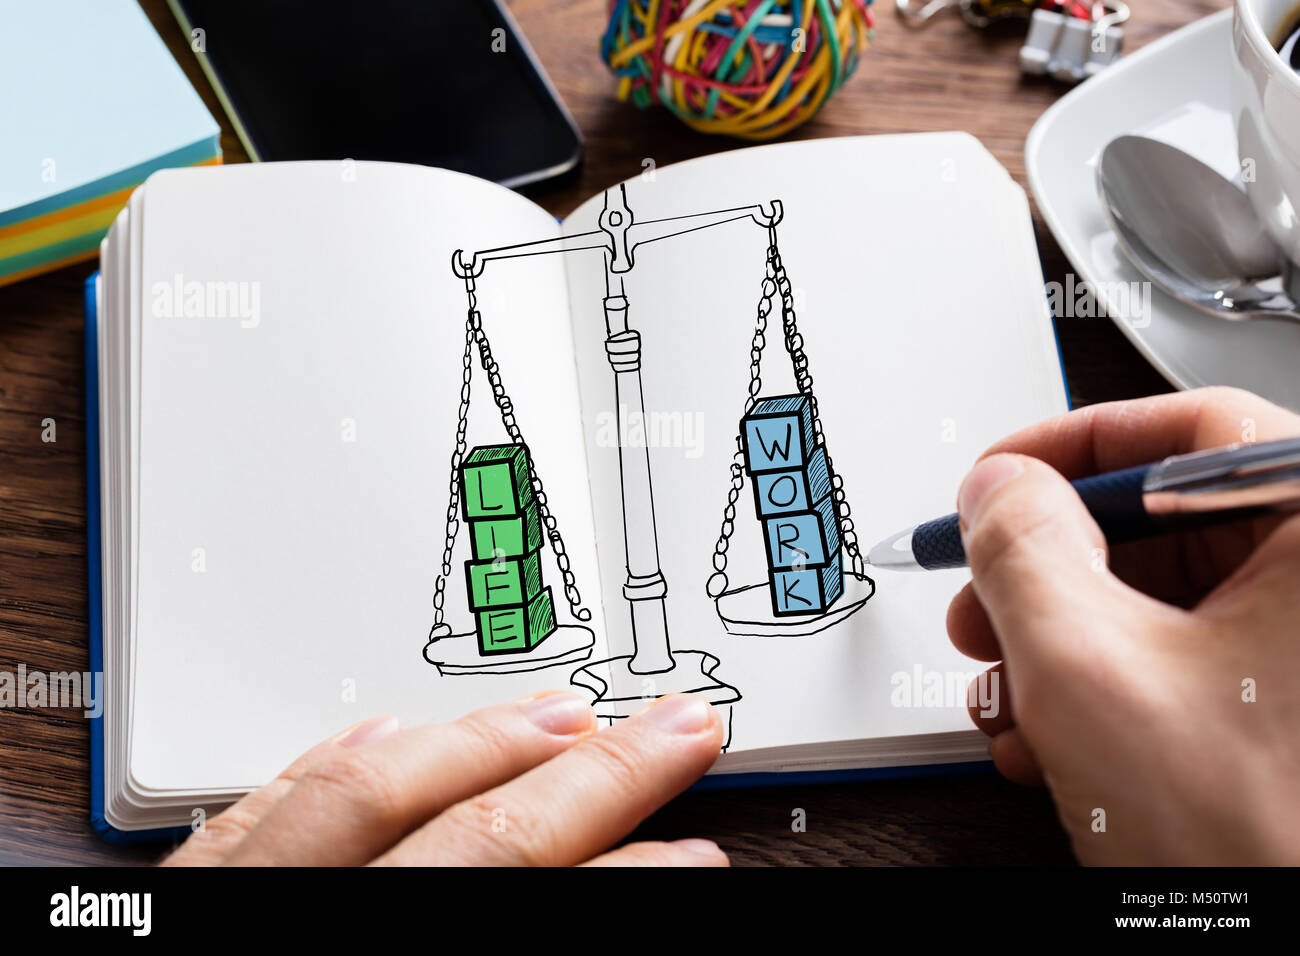 Man Drawing Work Life Balance Concept At Desk - Stock Image